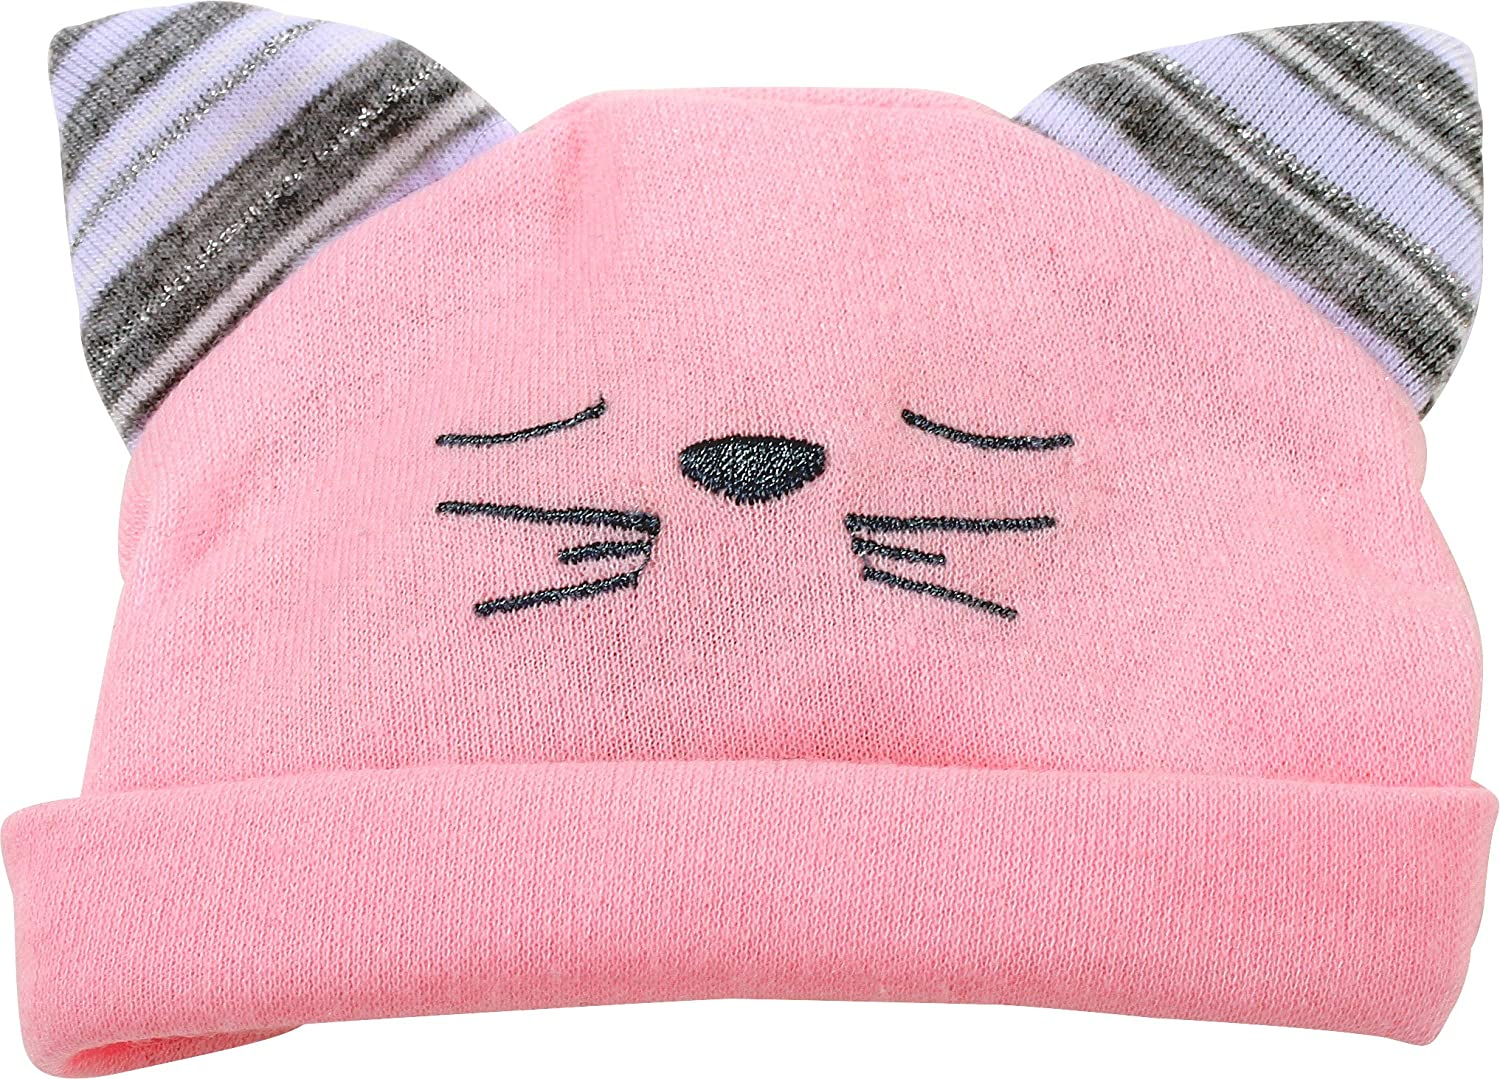 "Gotz Basic Boutique Pink Hat with Cat Ears for 13"" Baby Doll"